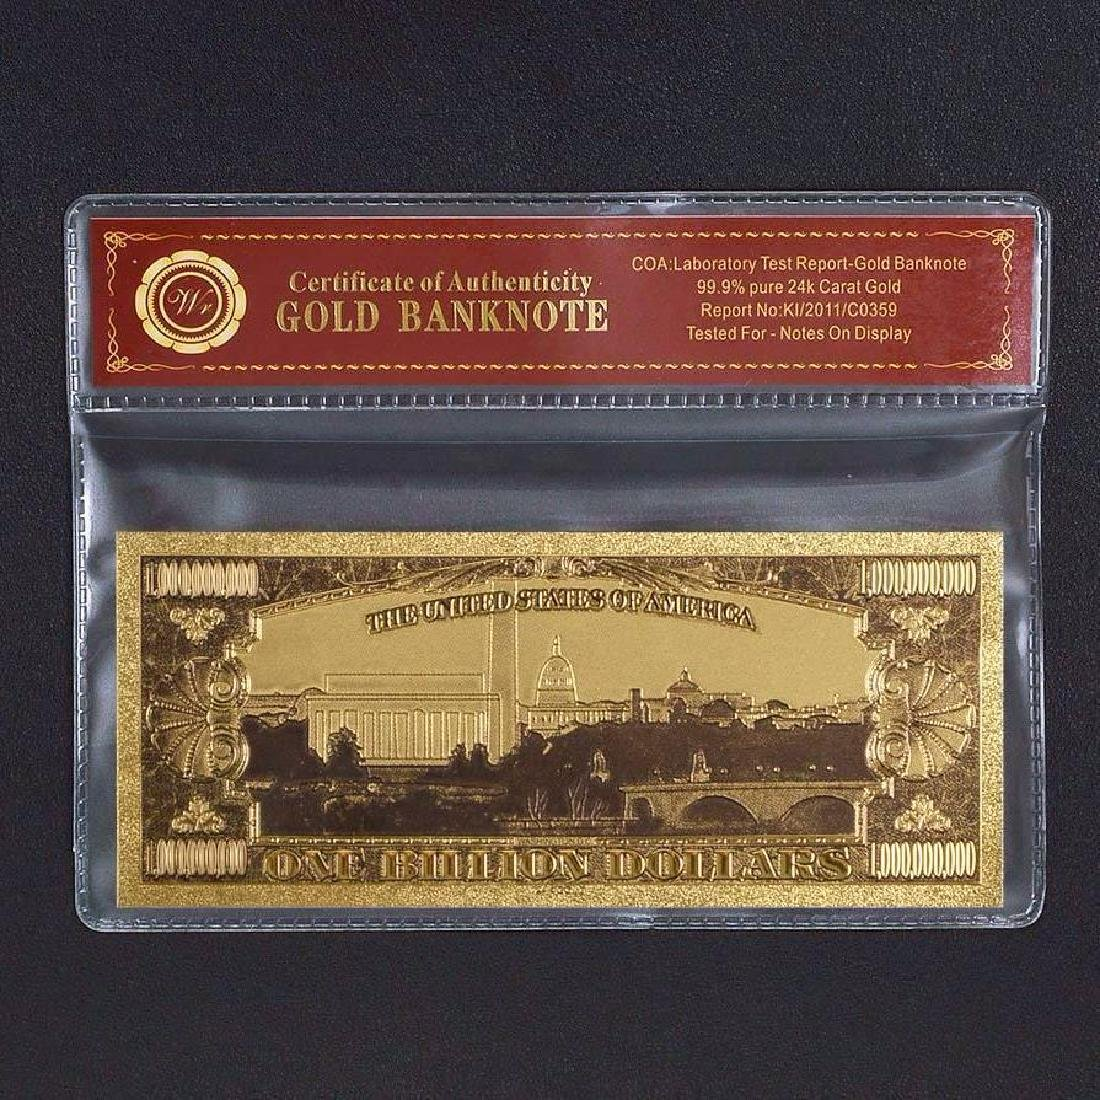 USA $1,000,000,000 Colored 24K Gold Clad Banknote - 2